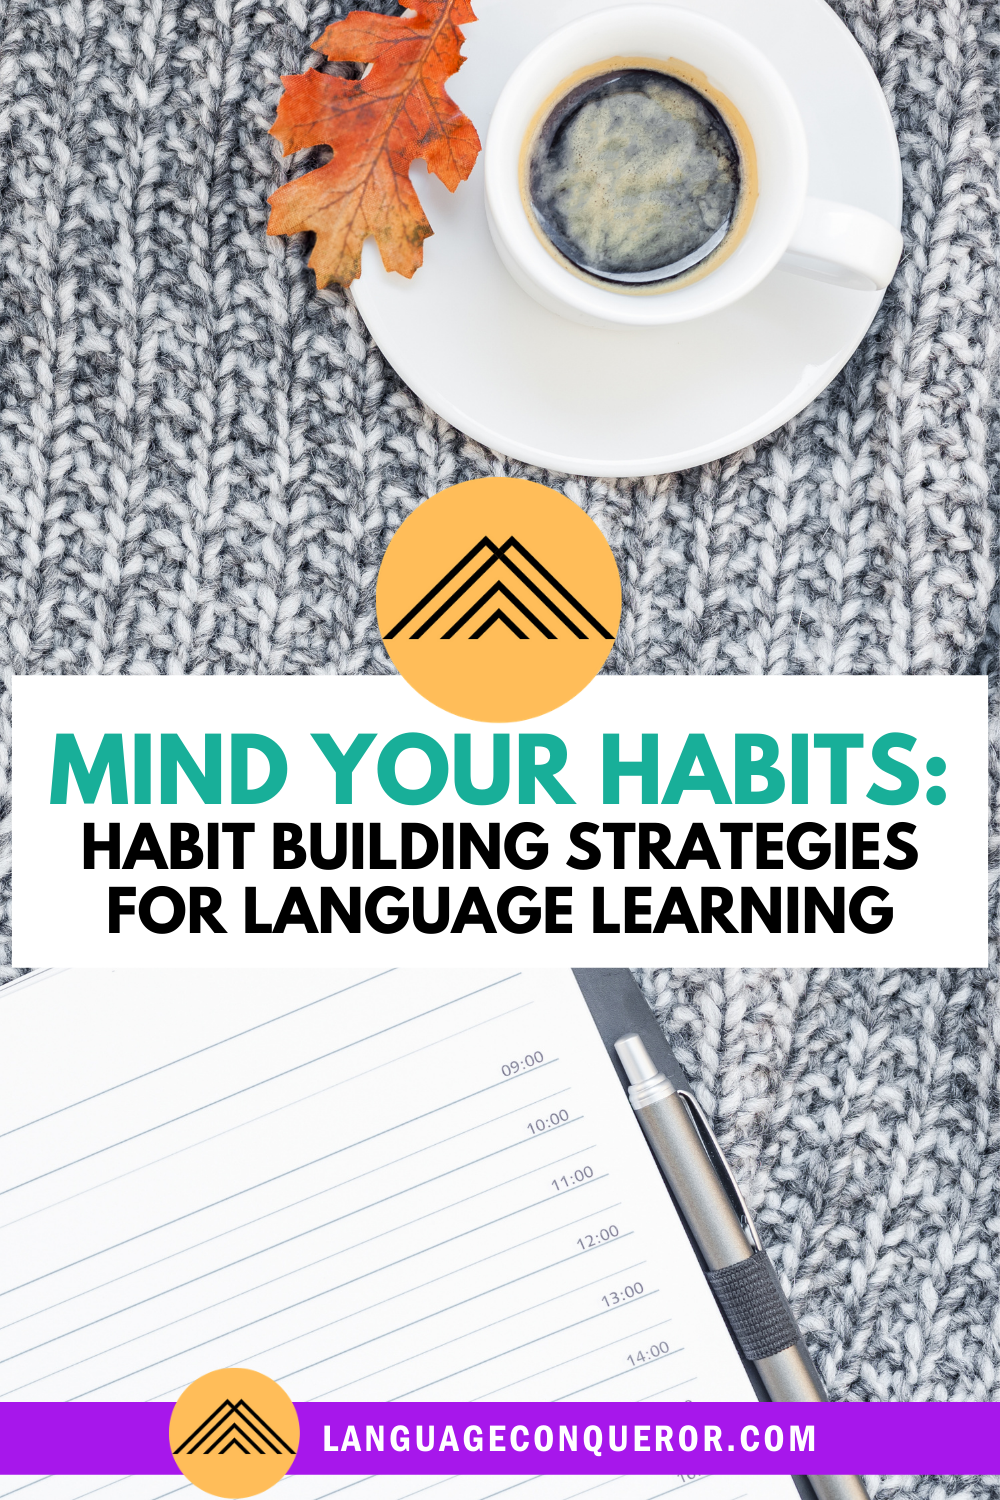 Mind Your Habits: Habit Building Strategies for Language Learning